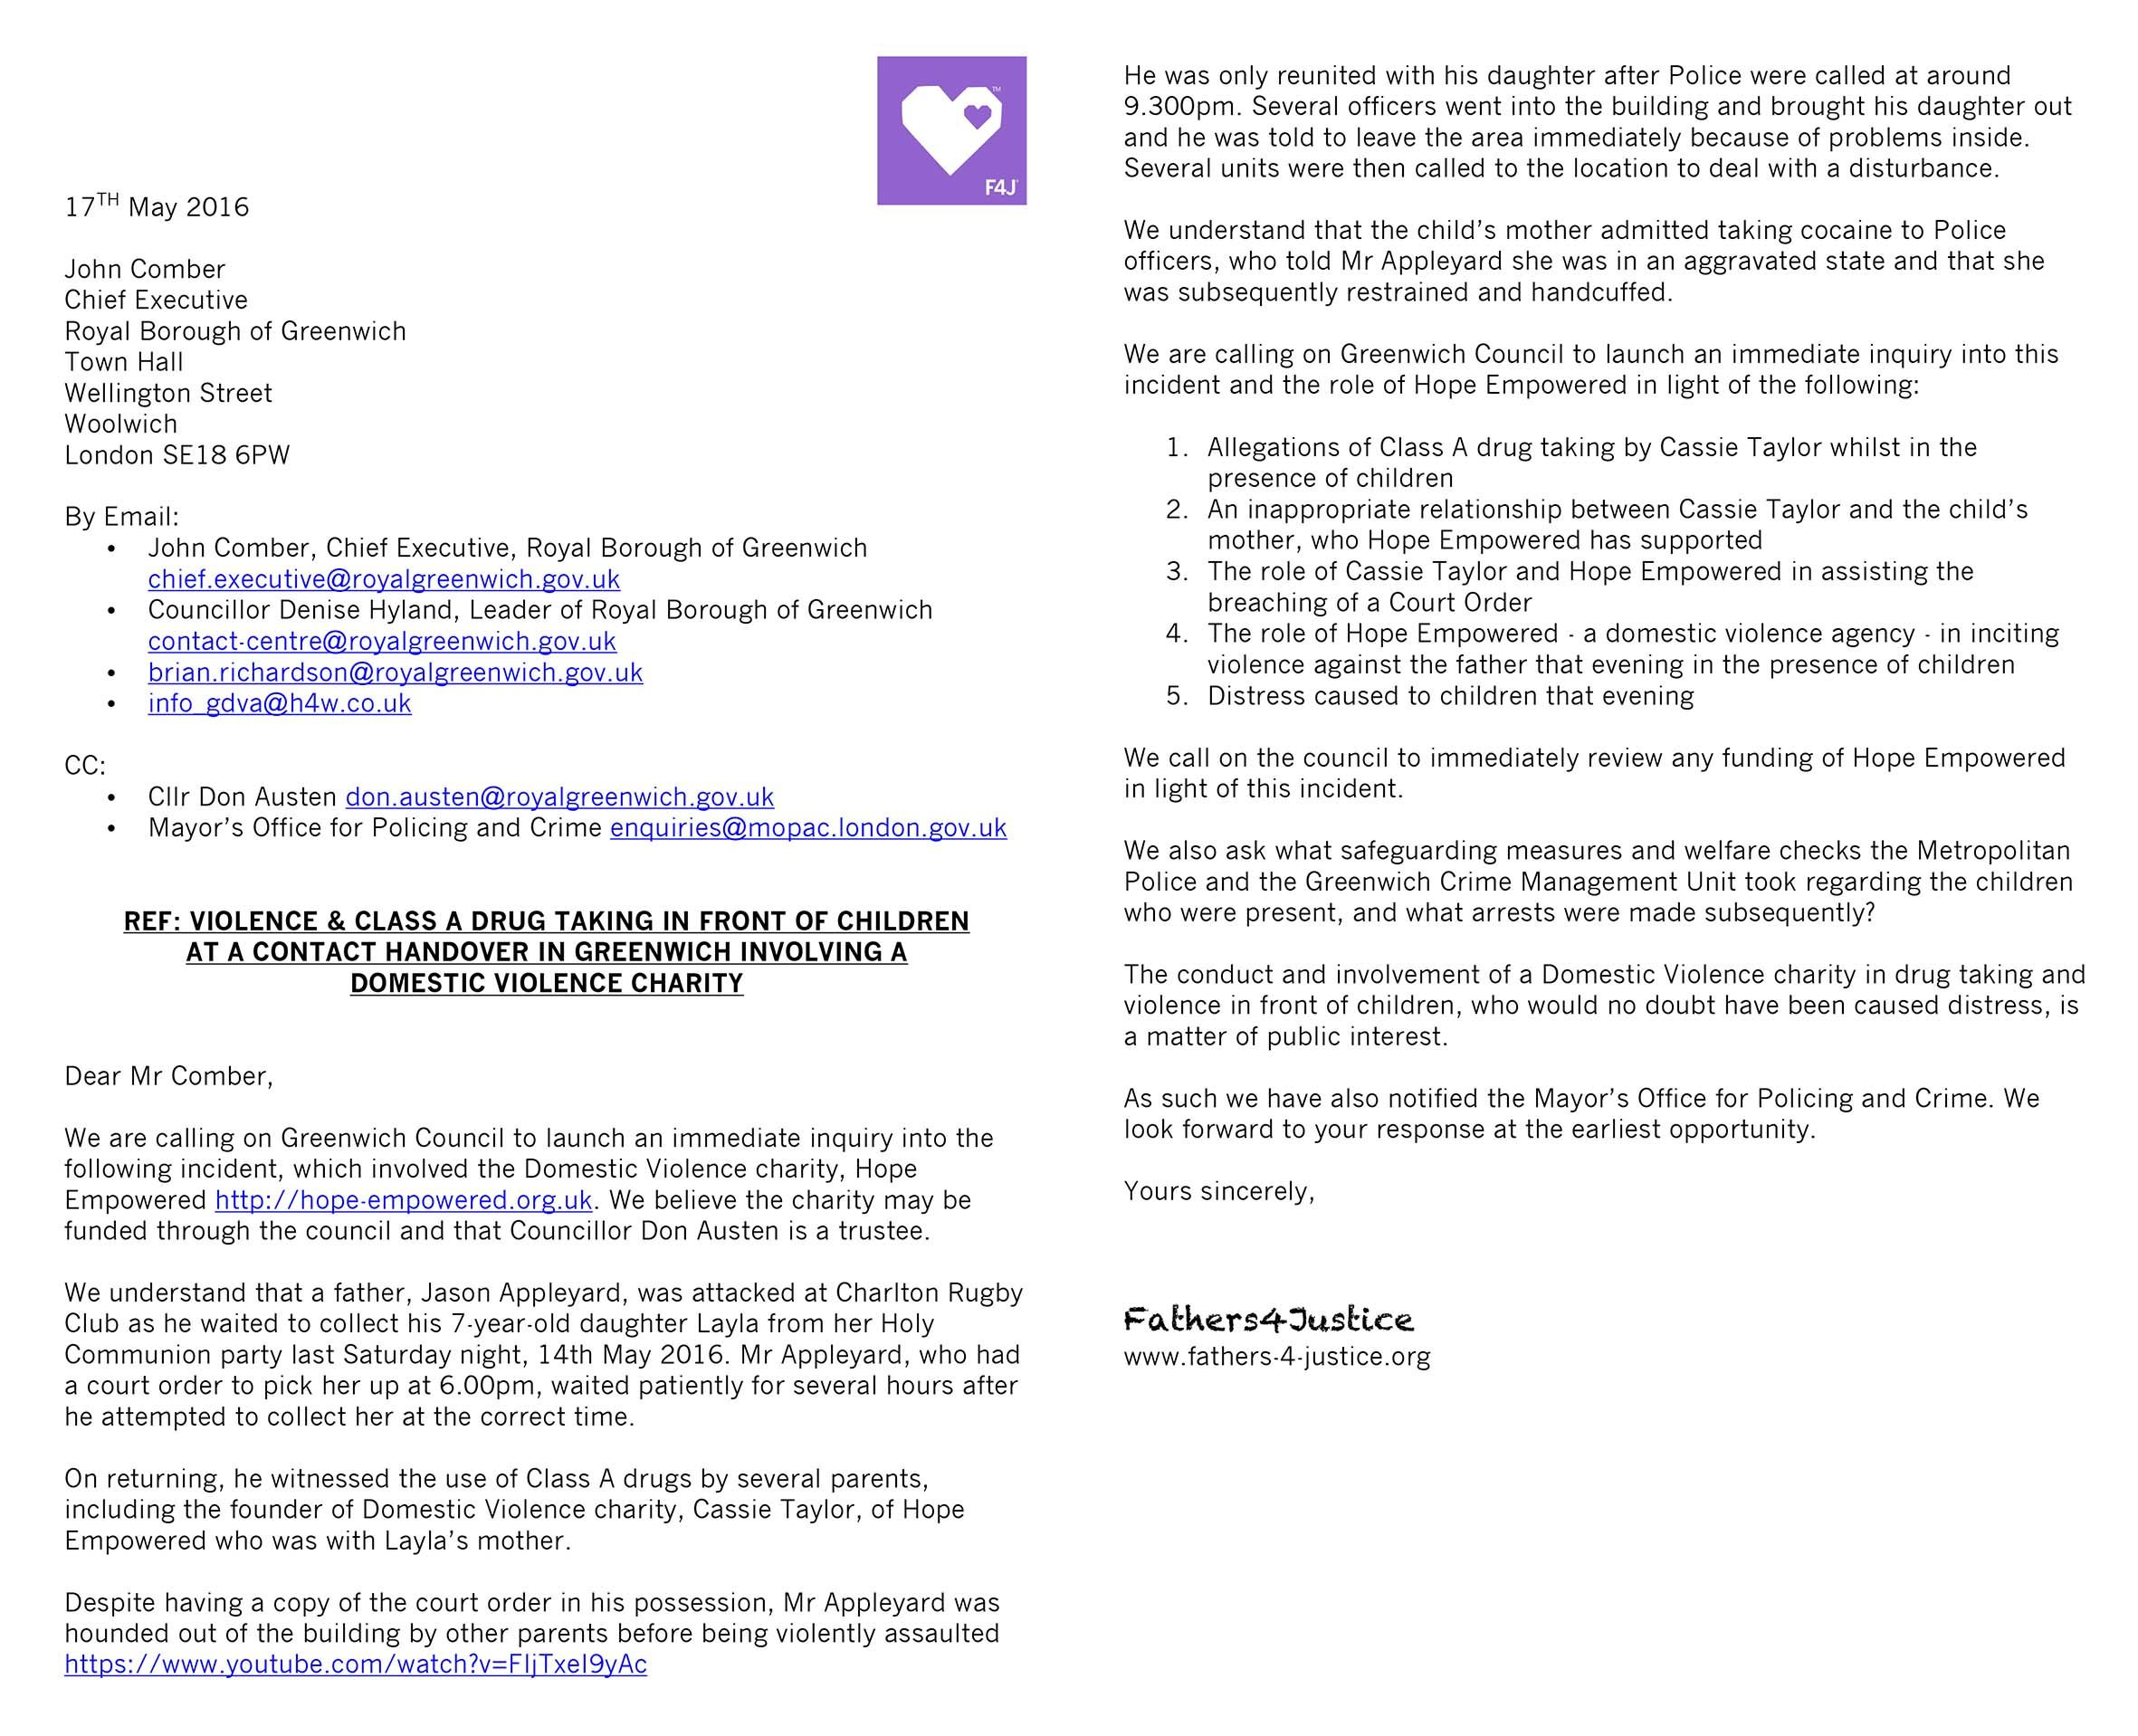 Letter For Site  FathersJustice    Domestic Violence